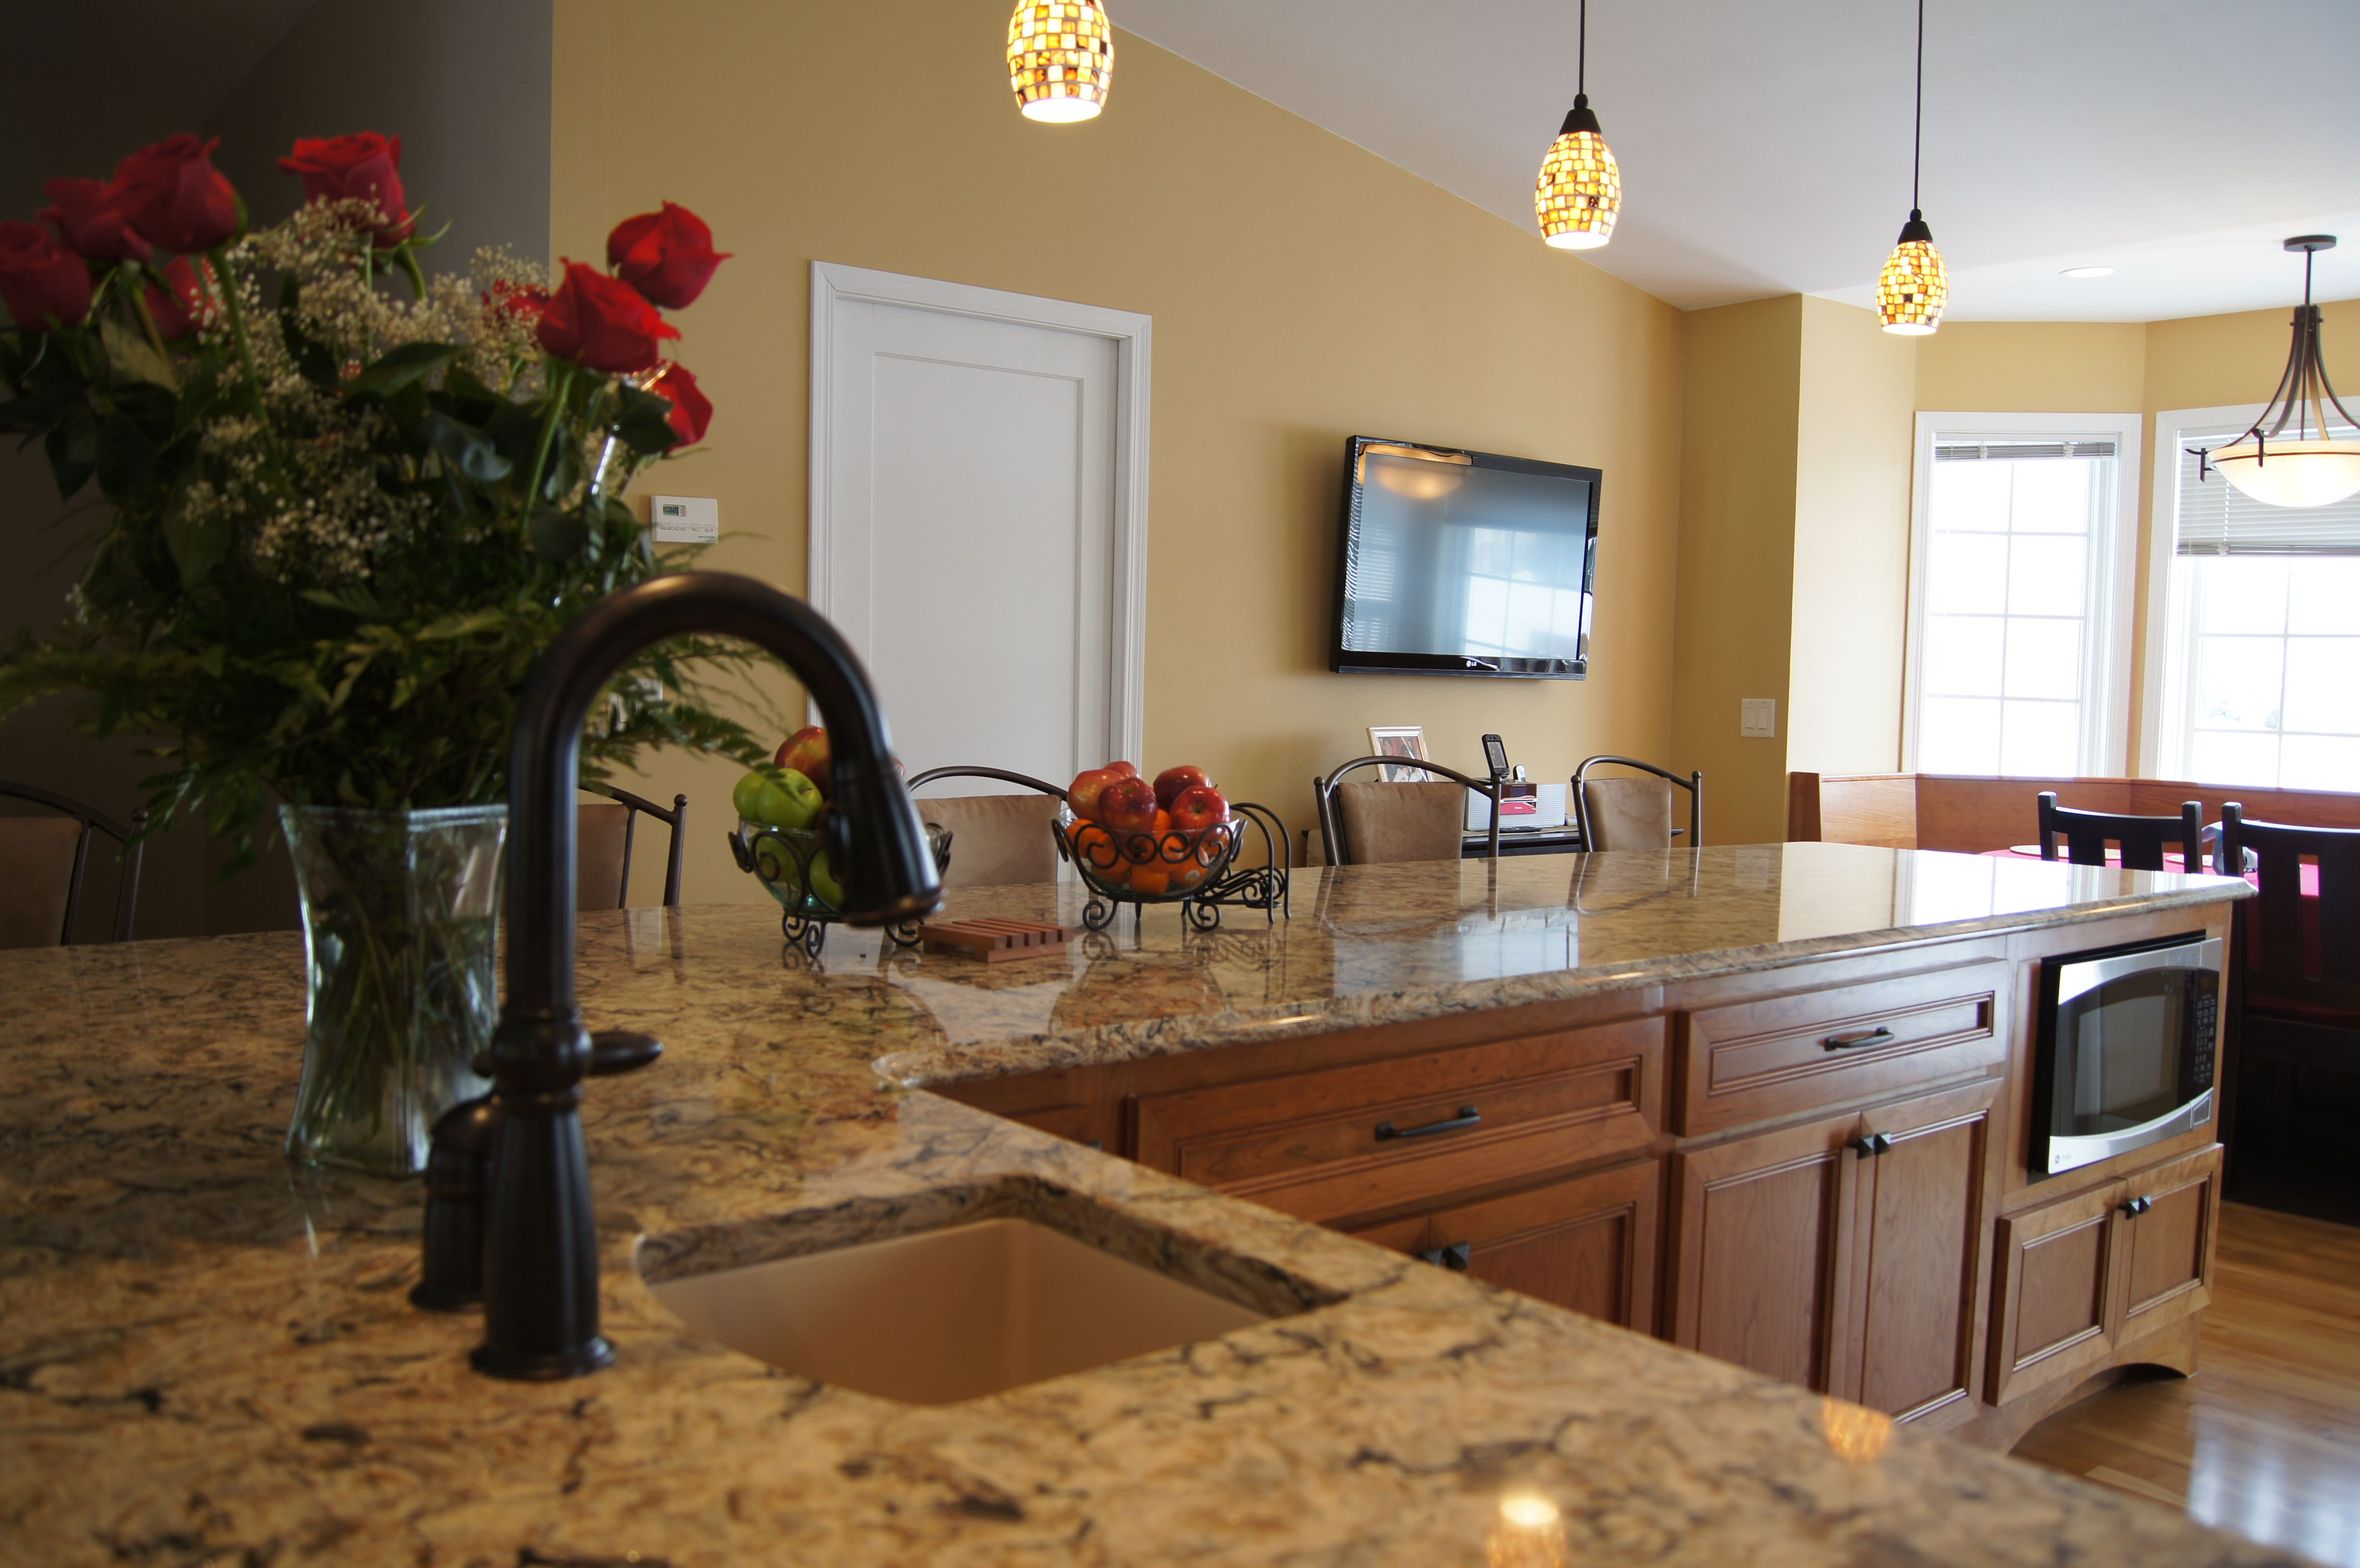 A Perfect Color For A Warm Feel So Welcoming! Here's A Kitchen I